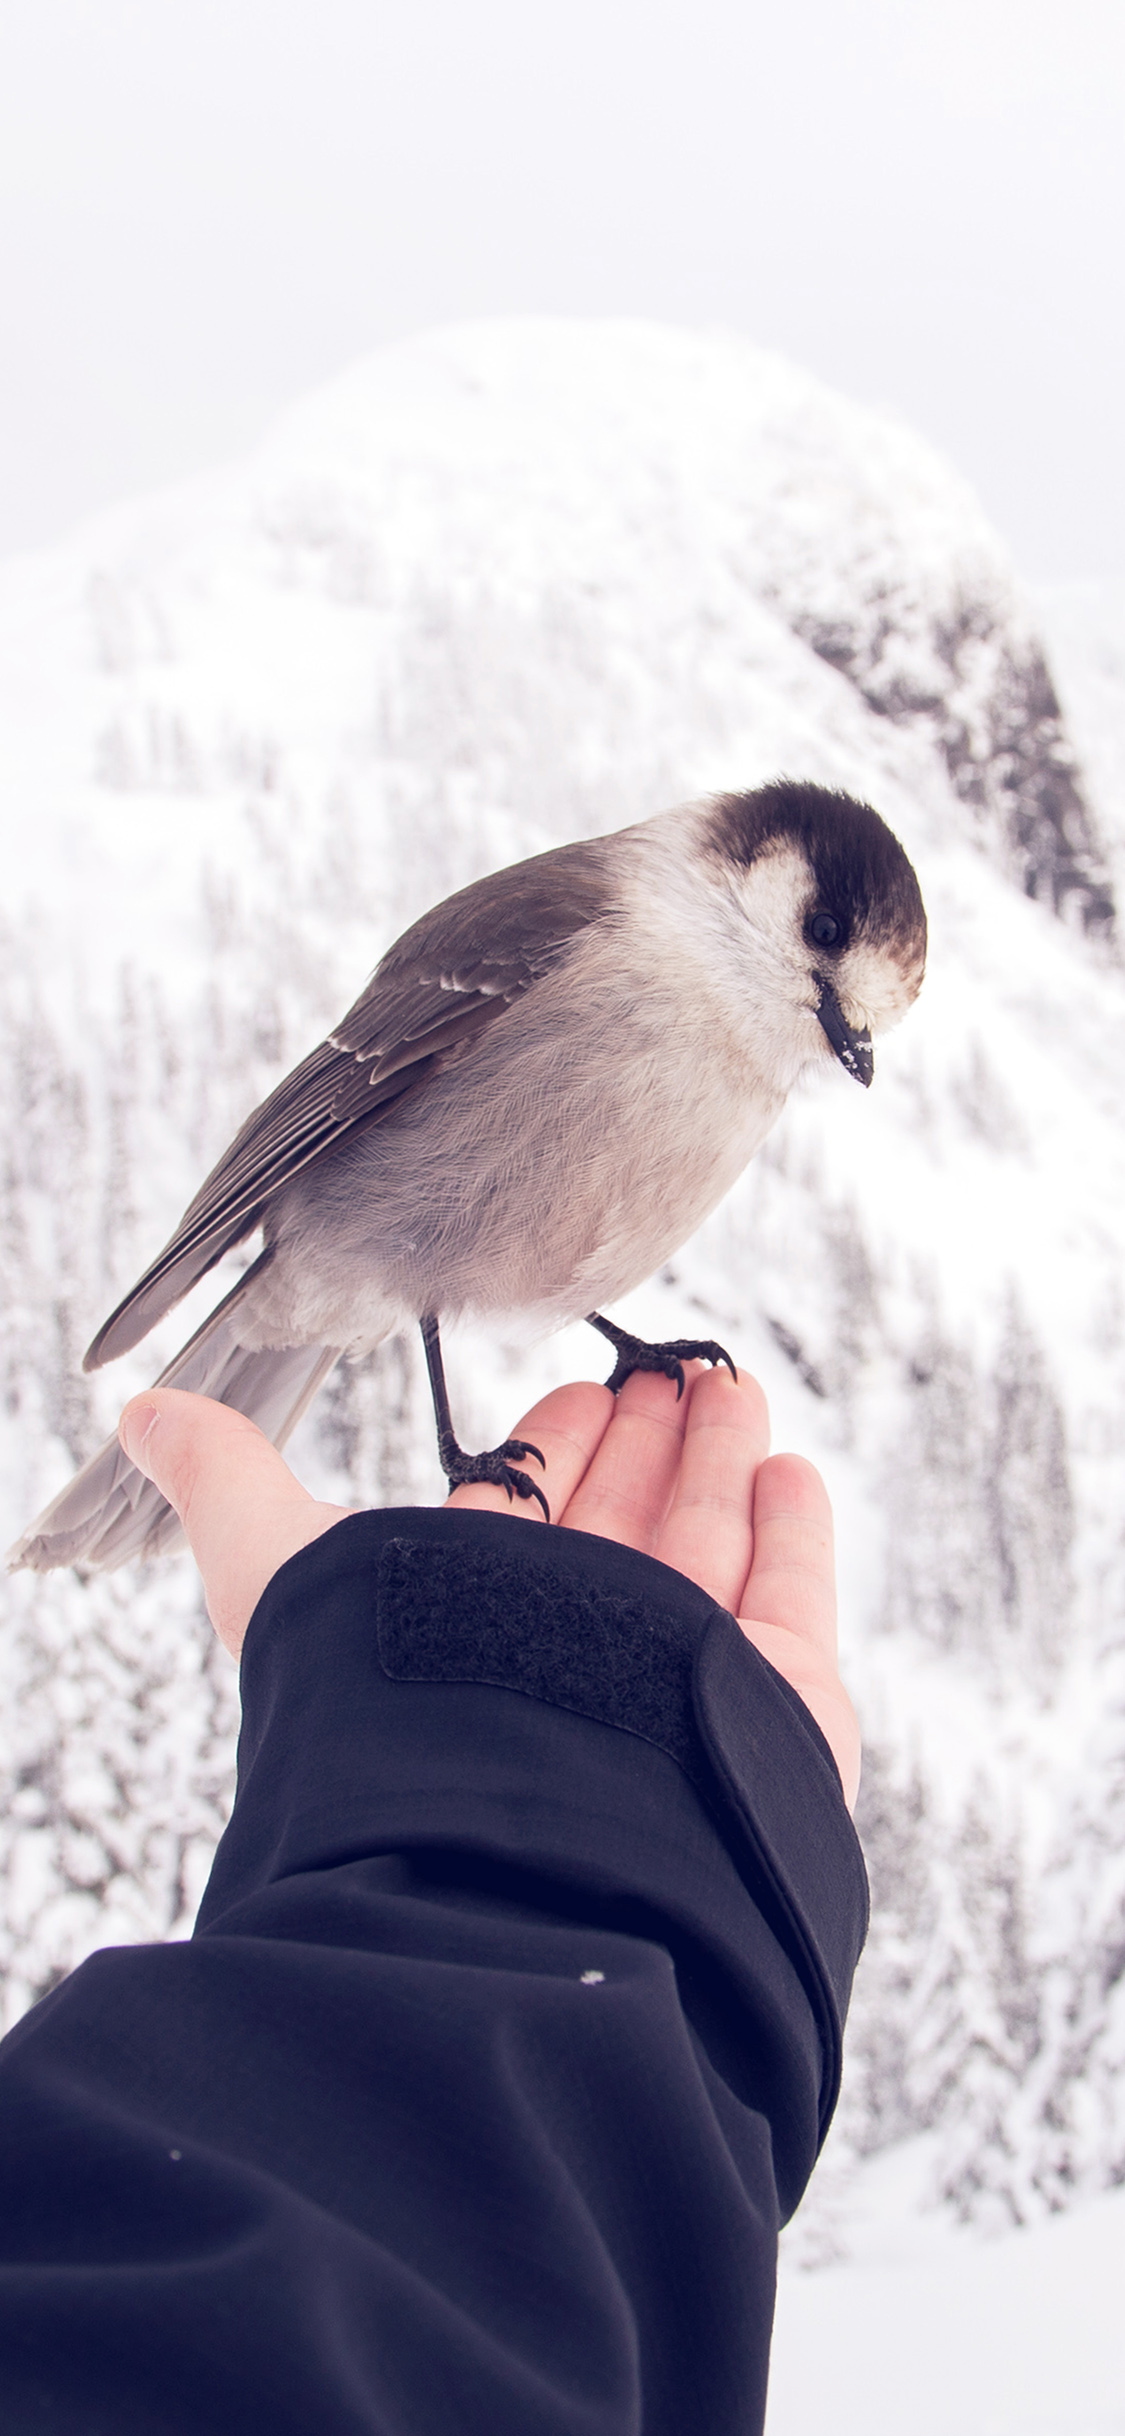 iPhoneXpapers.com-Apple-iPhone-wallpaper-nb92-bird-in-my-hand-snow-winter-cold-animal